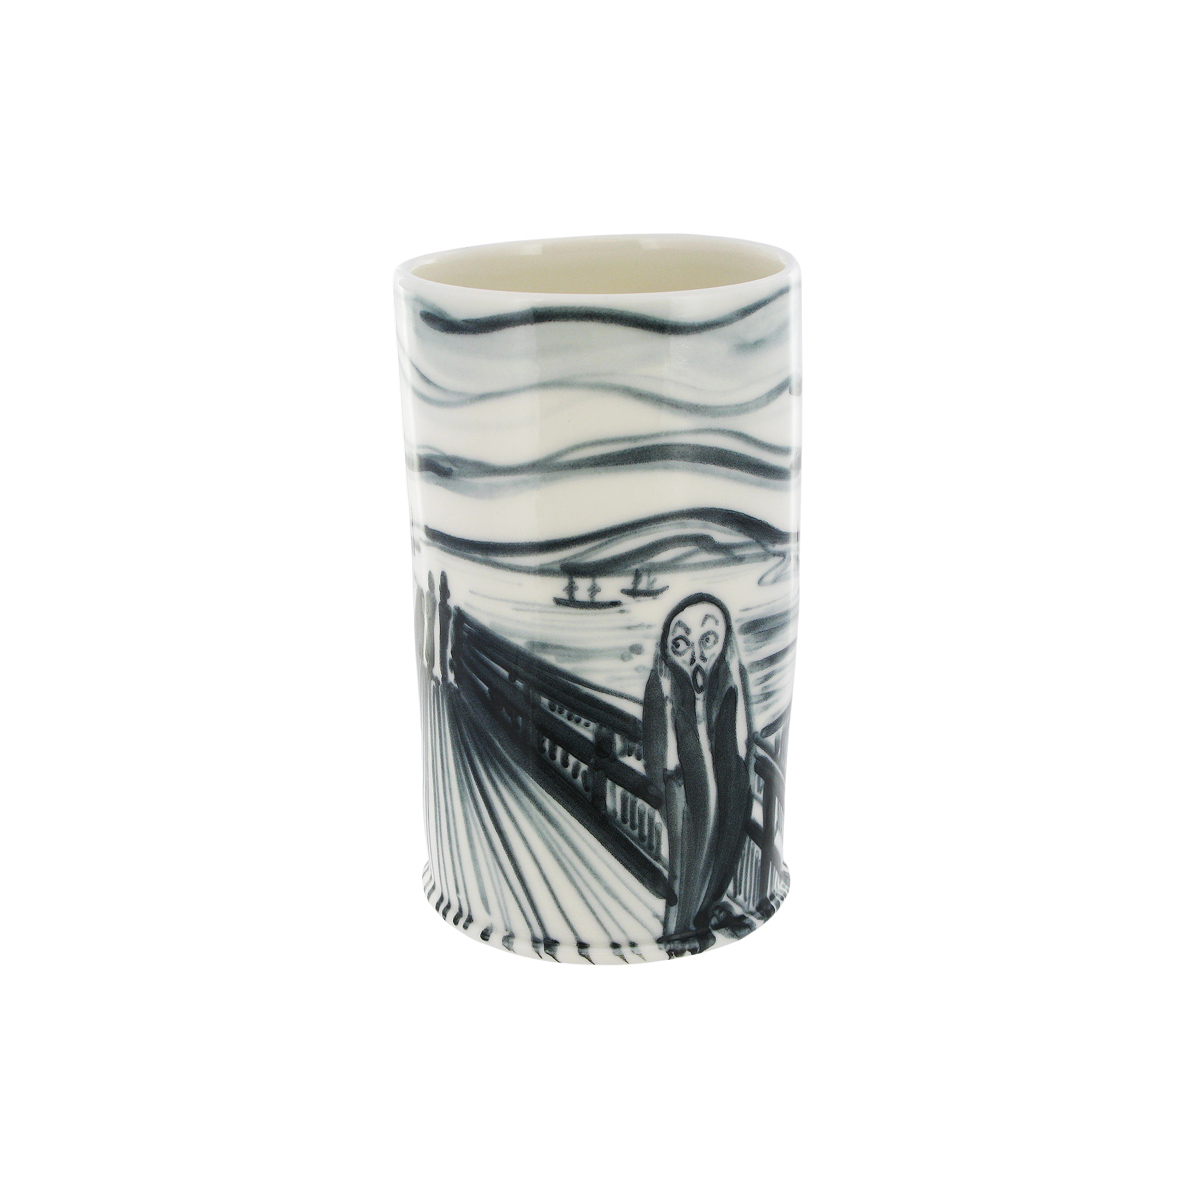 The Scream porcelain cup